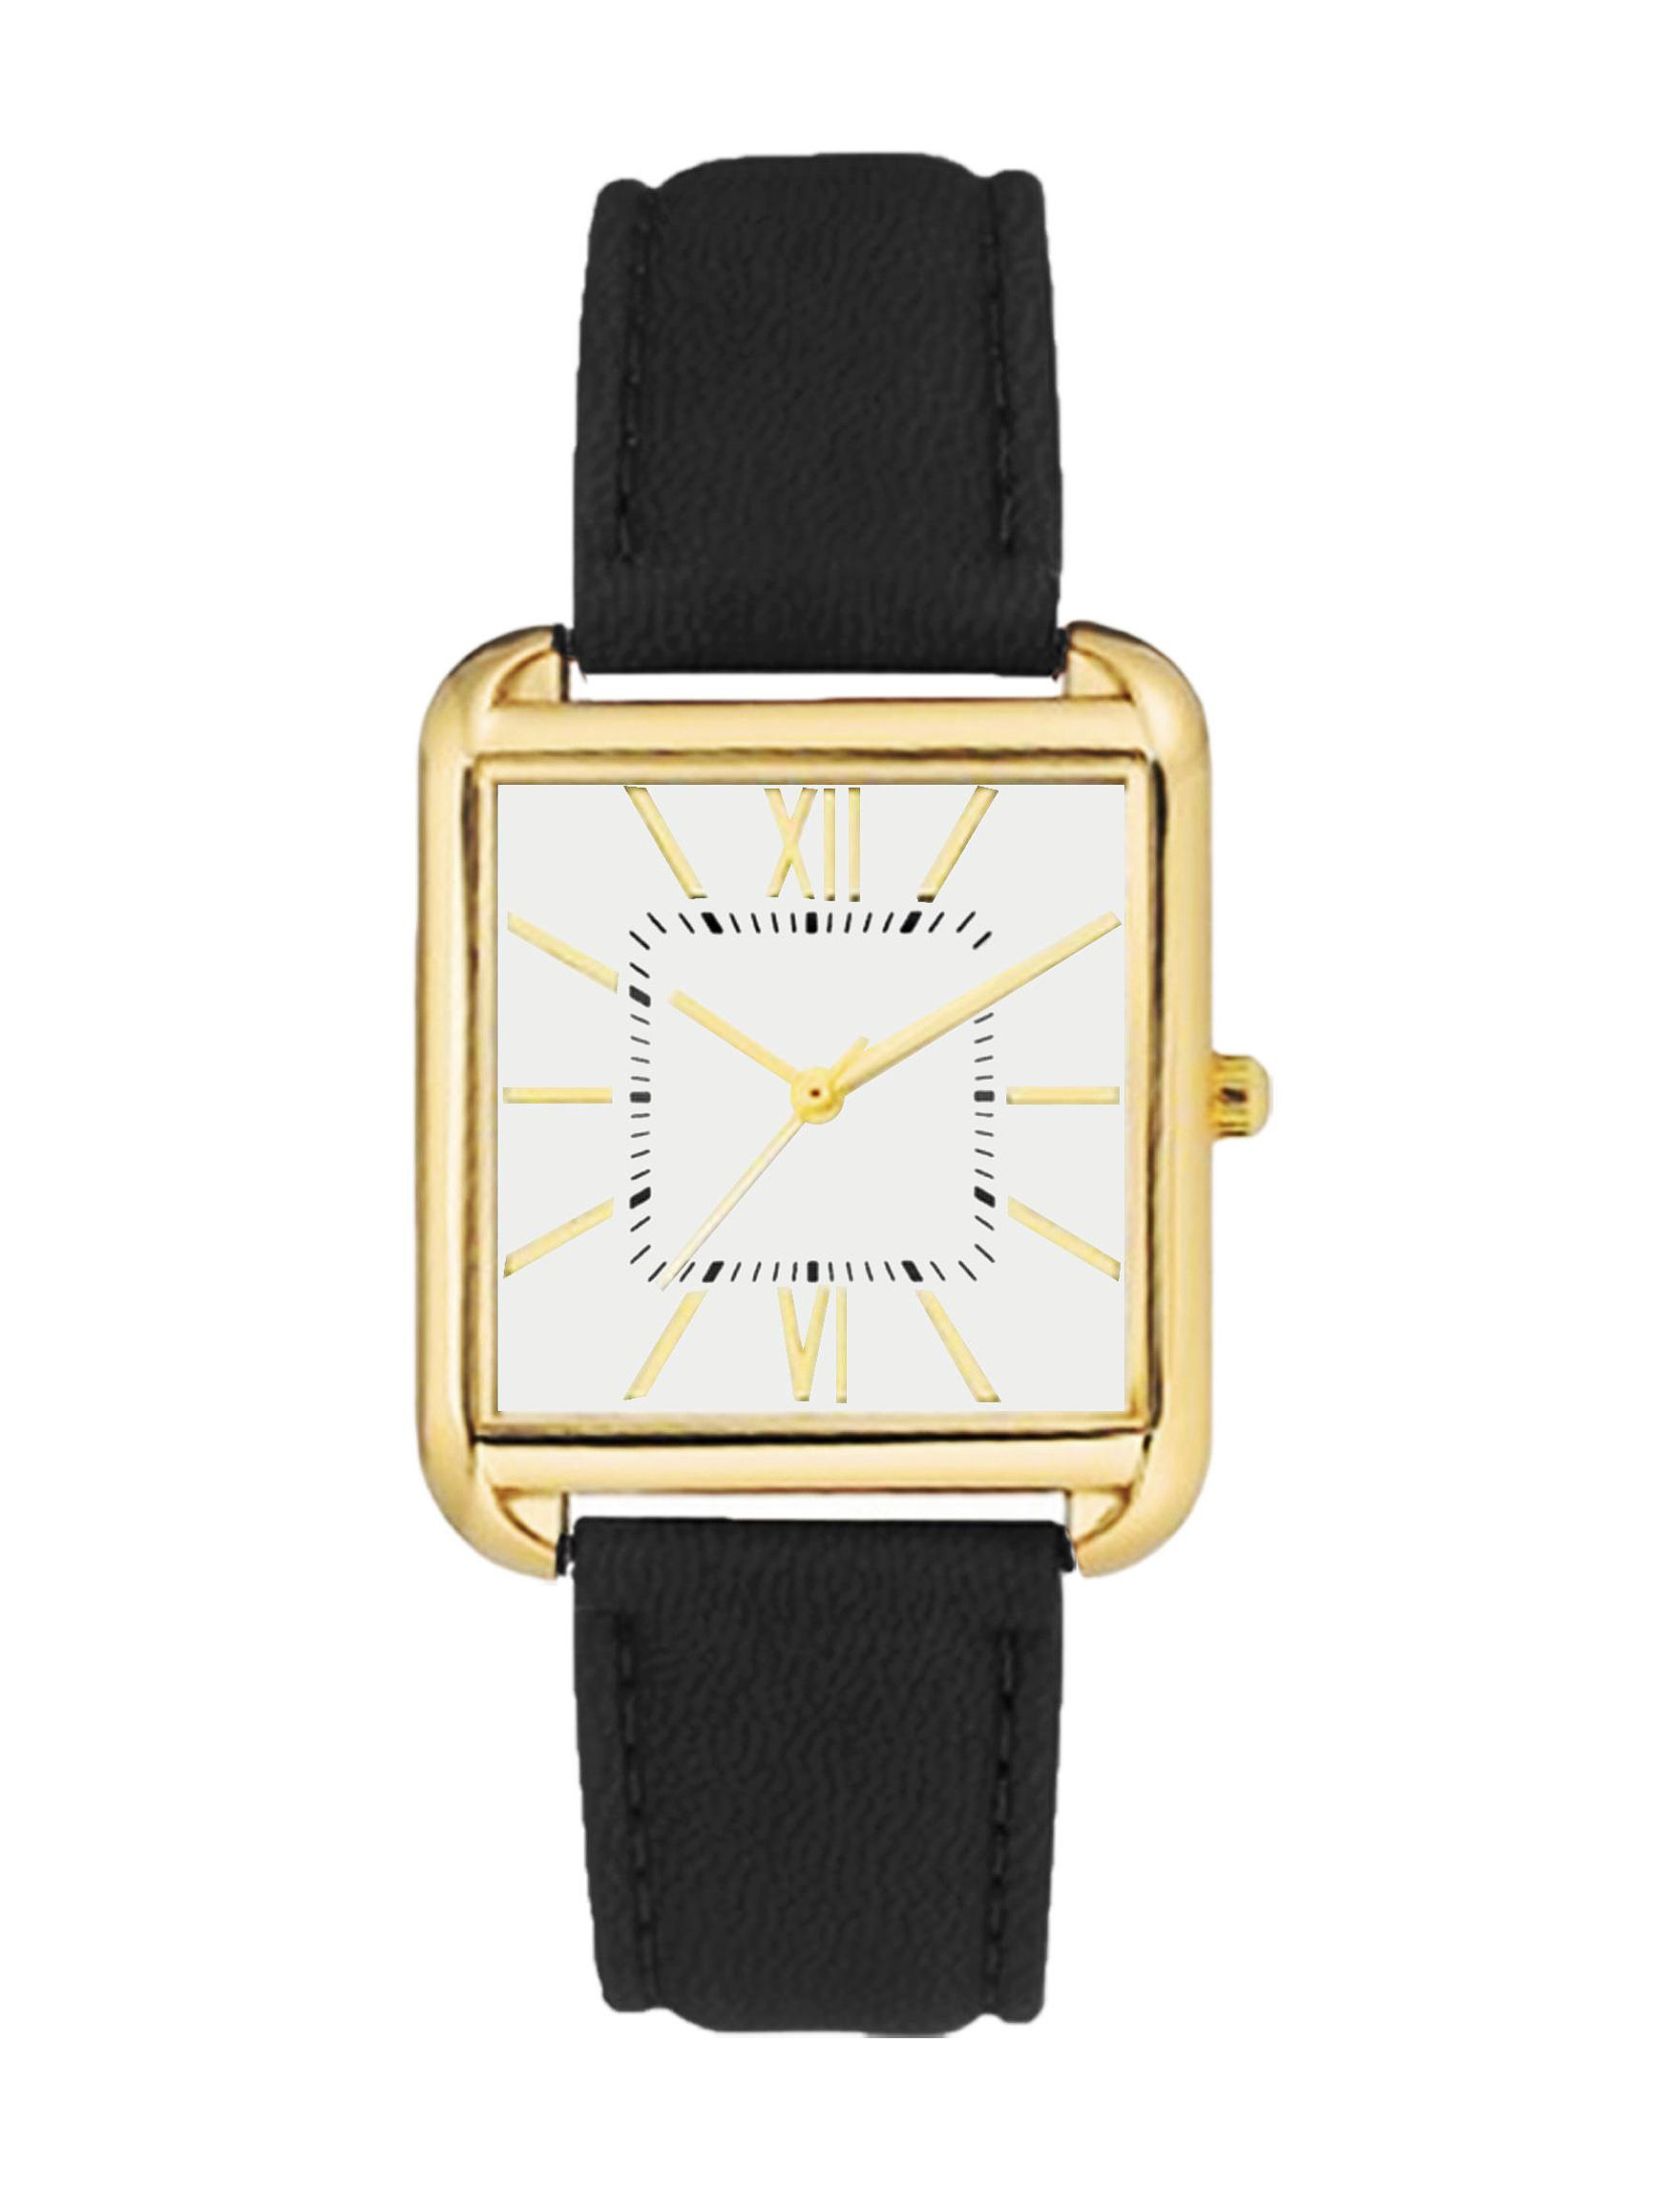 Global Time Gold / Black Fashion Watches